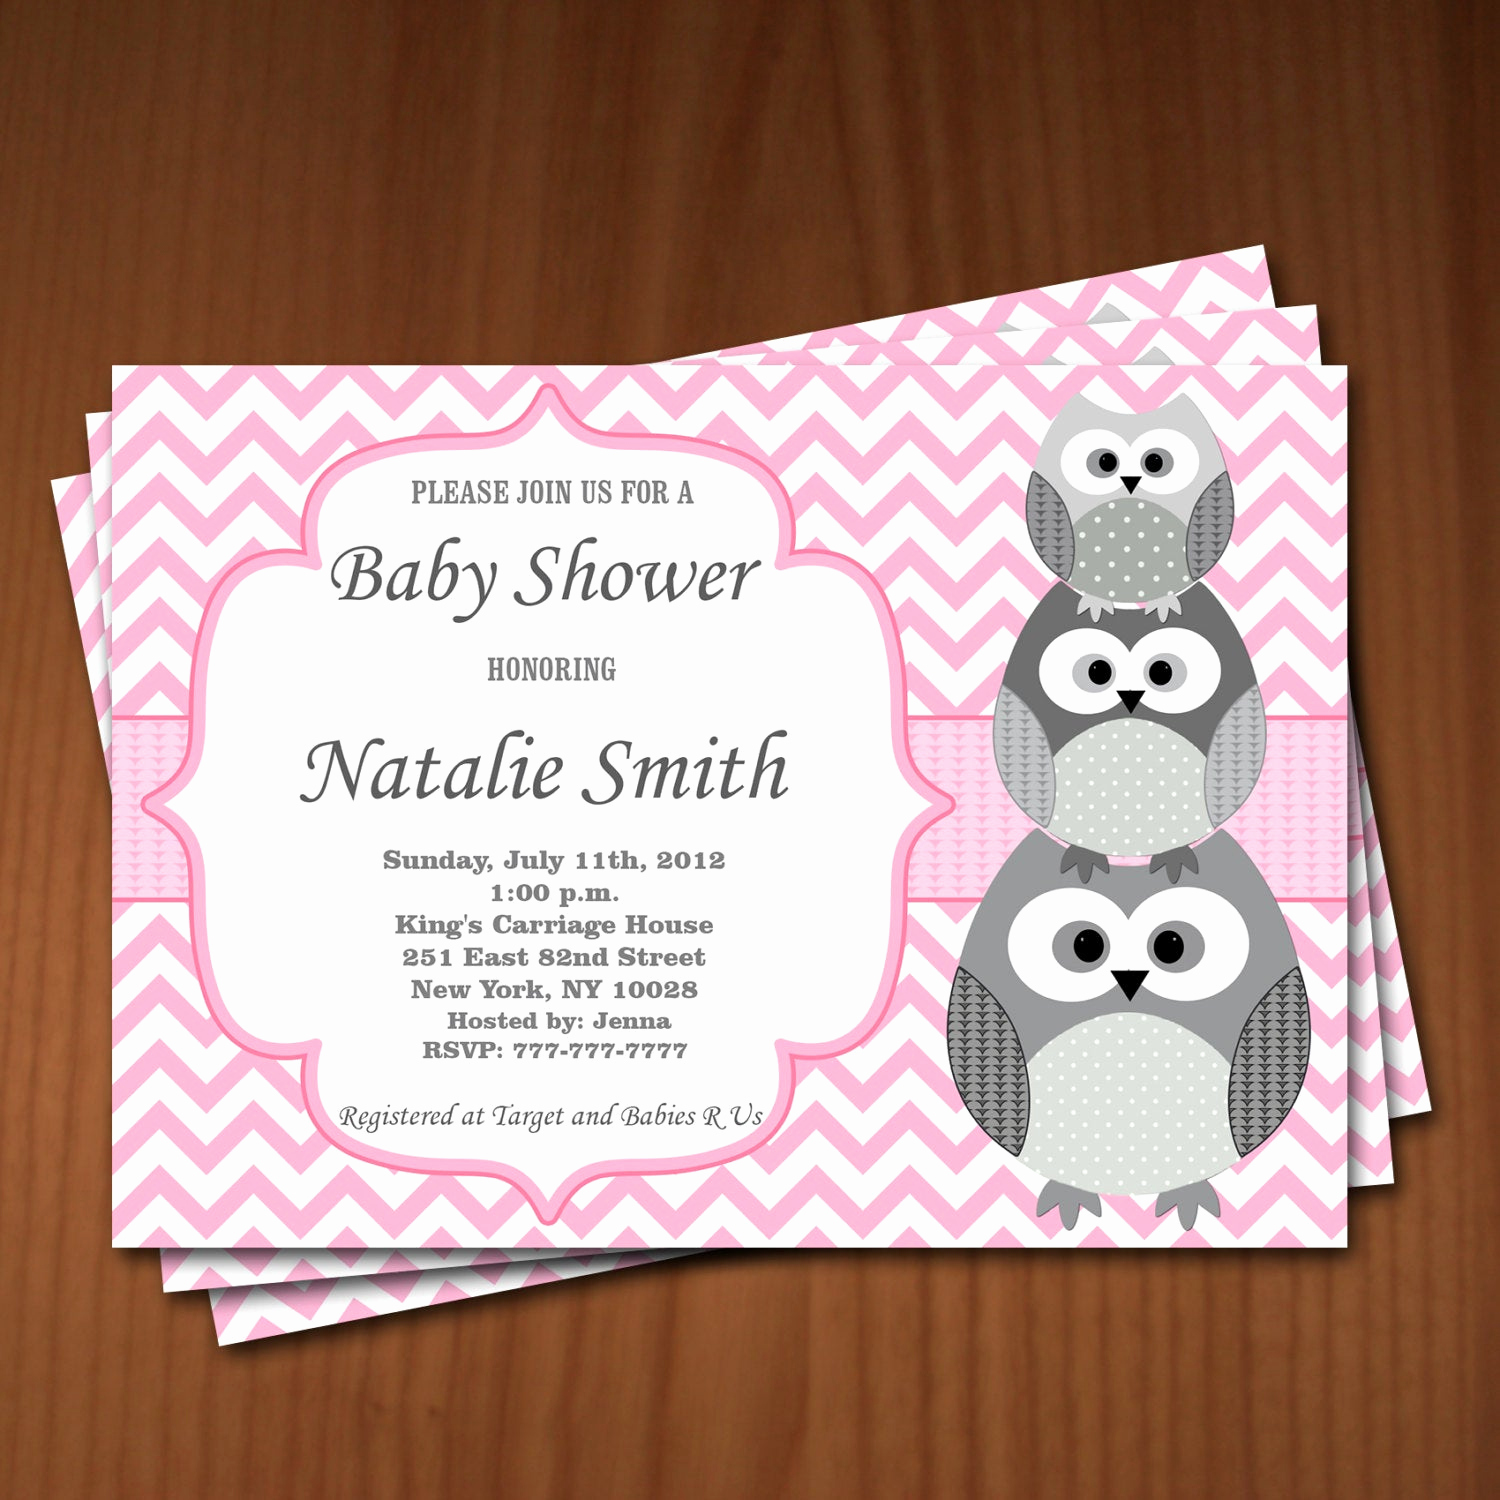 Baby Shower Invitation for Girl Beautiful Owl Baby Shower Invitation Girl Baby Shower Invitations